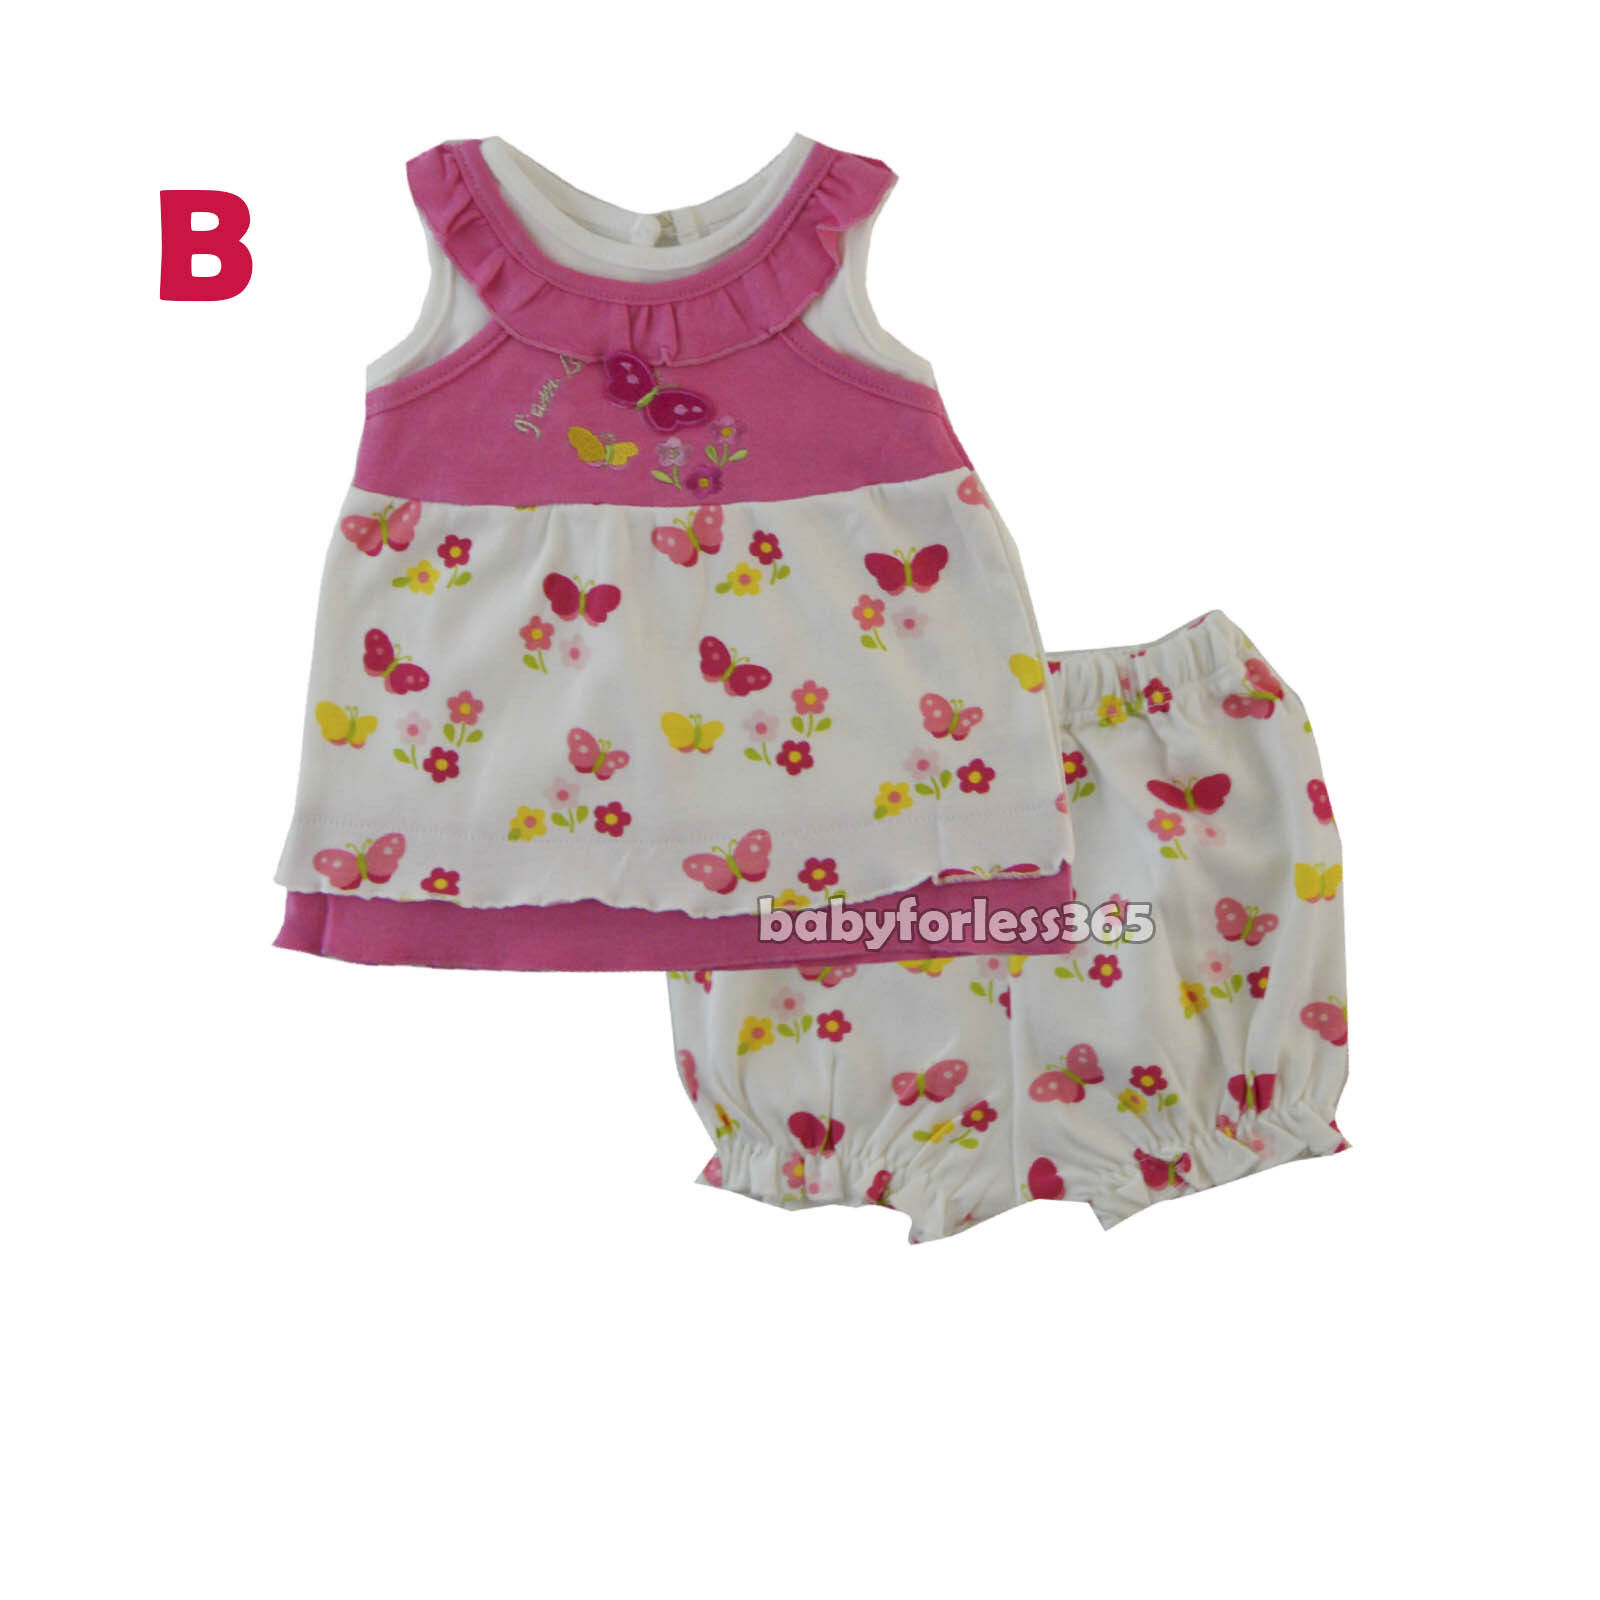 03ded1bdb New Baby Girls Outfits Clothes 2 Pieces Shirt with Shorts Size 3 6 9 ...